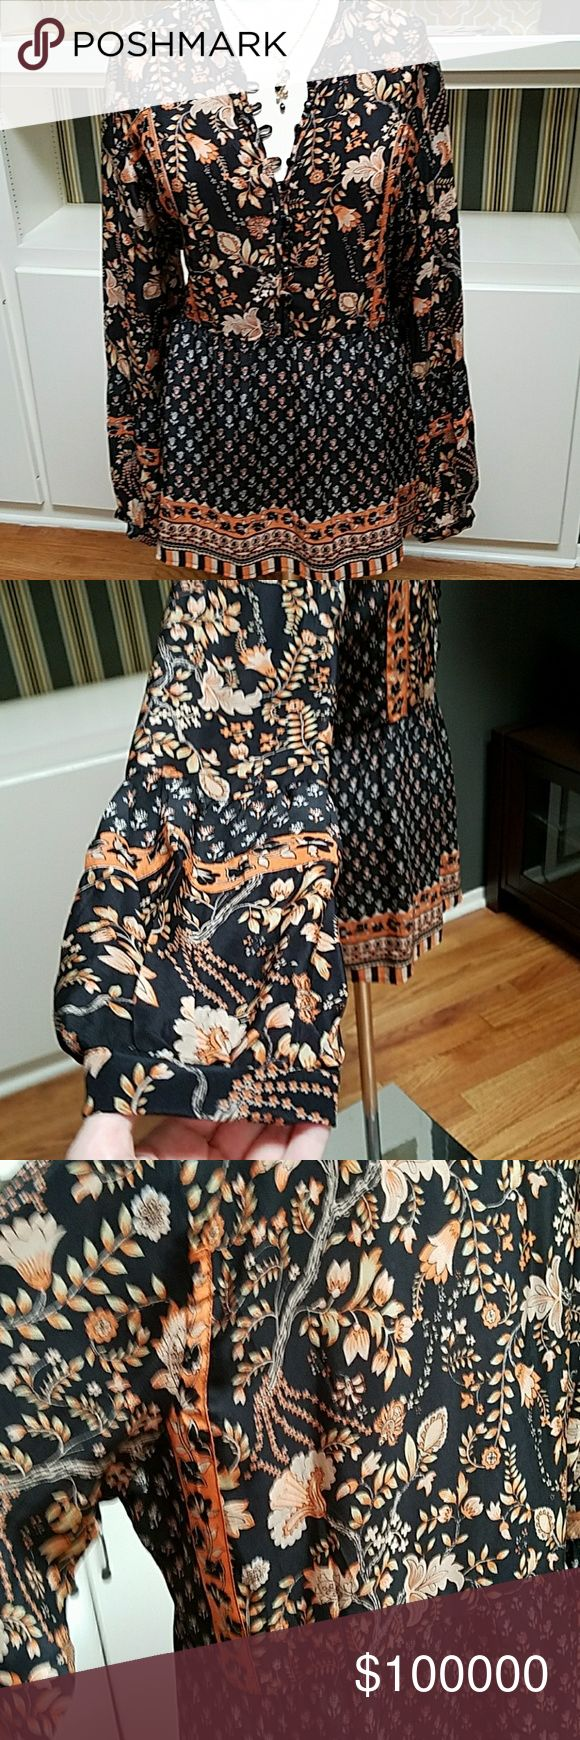 Tolani Silk Tunic sz L 100% silk, bell sleeves, button placket, short mock collar, floral border print (necklace for sale under different listing) Tolani Tops Blouses